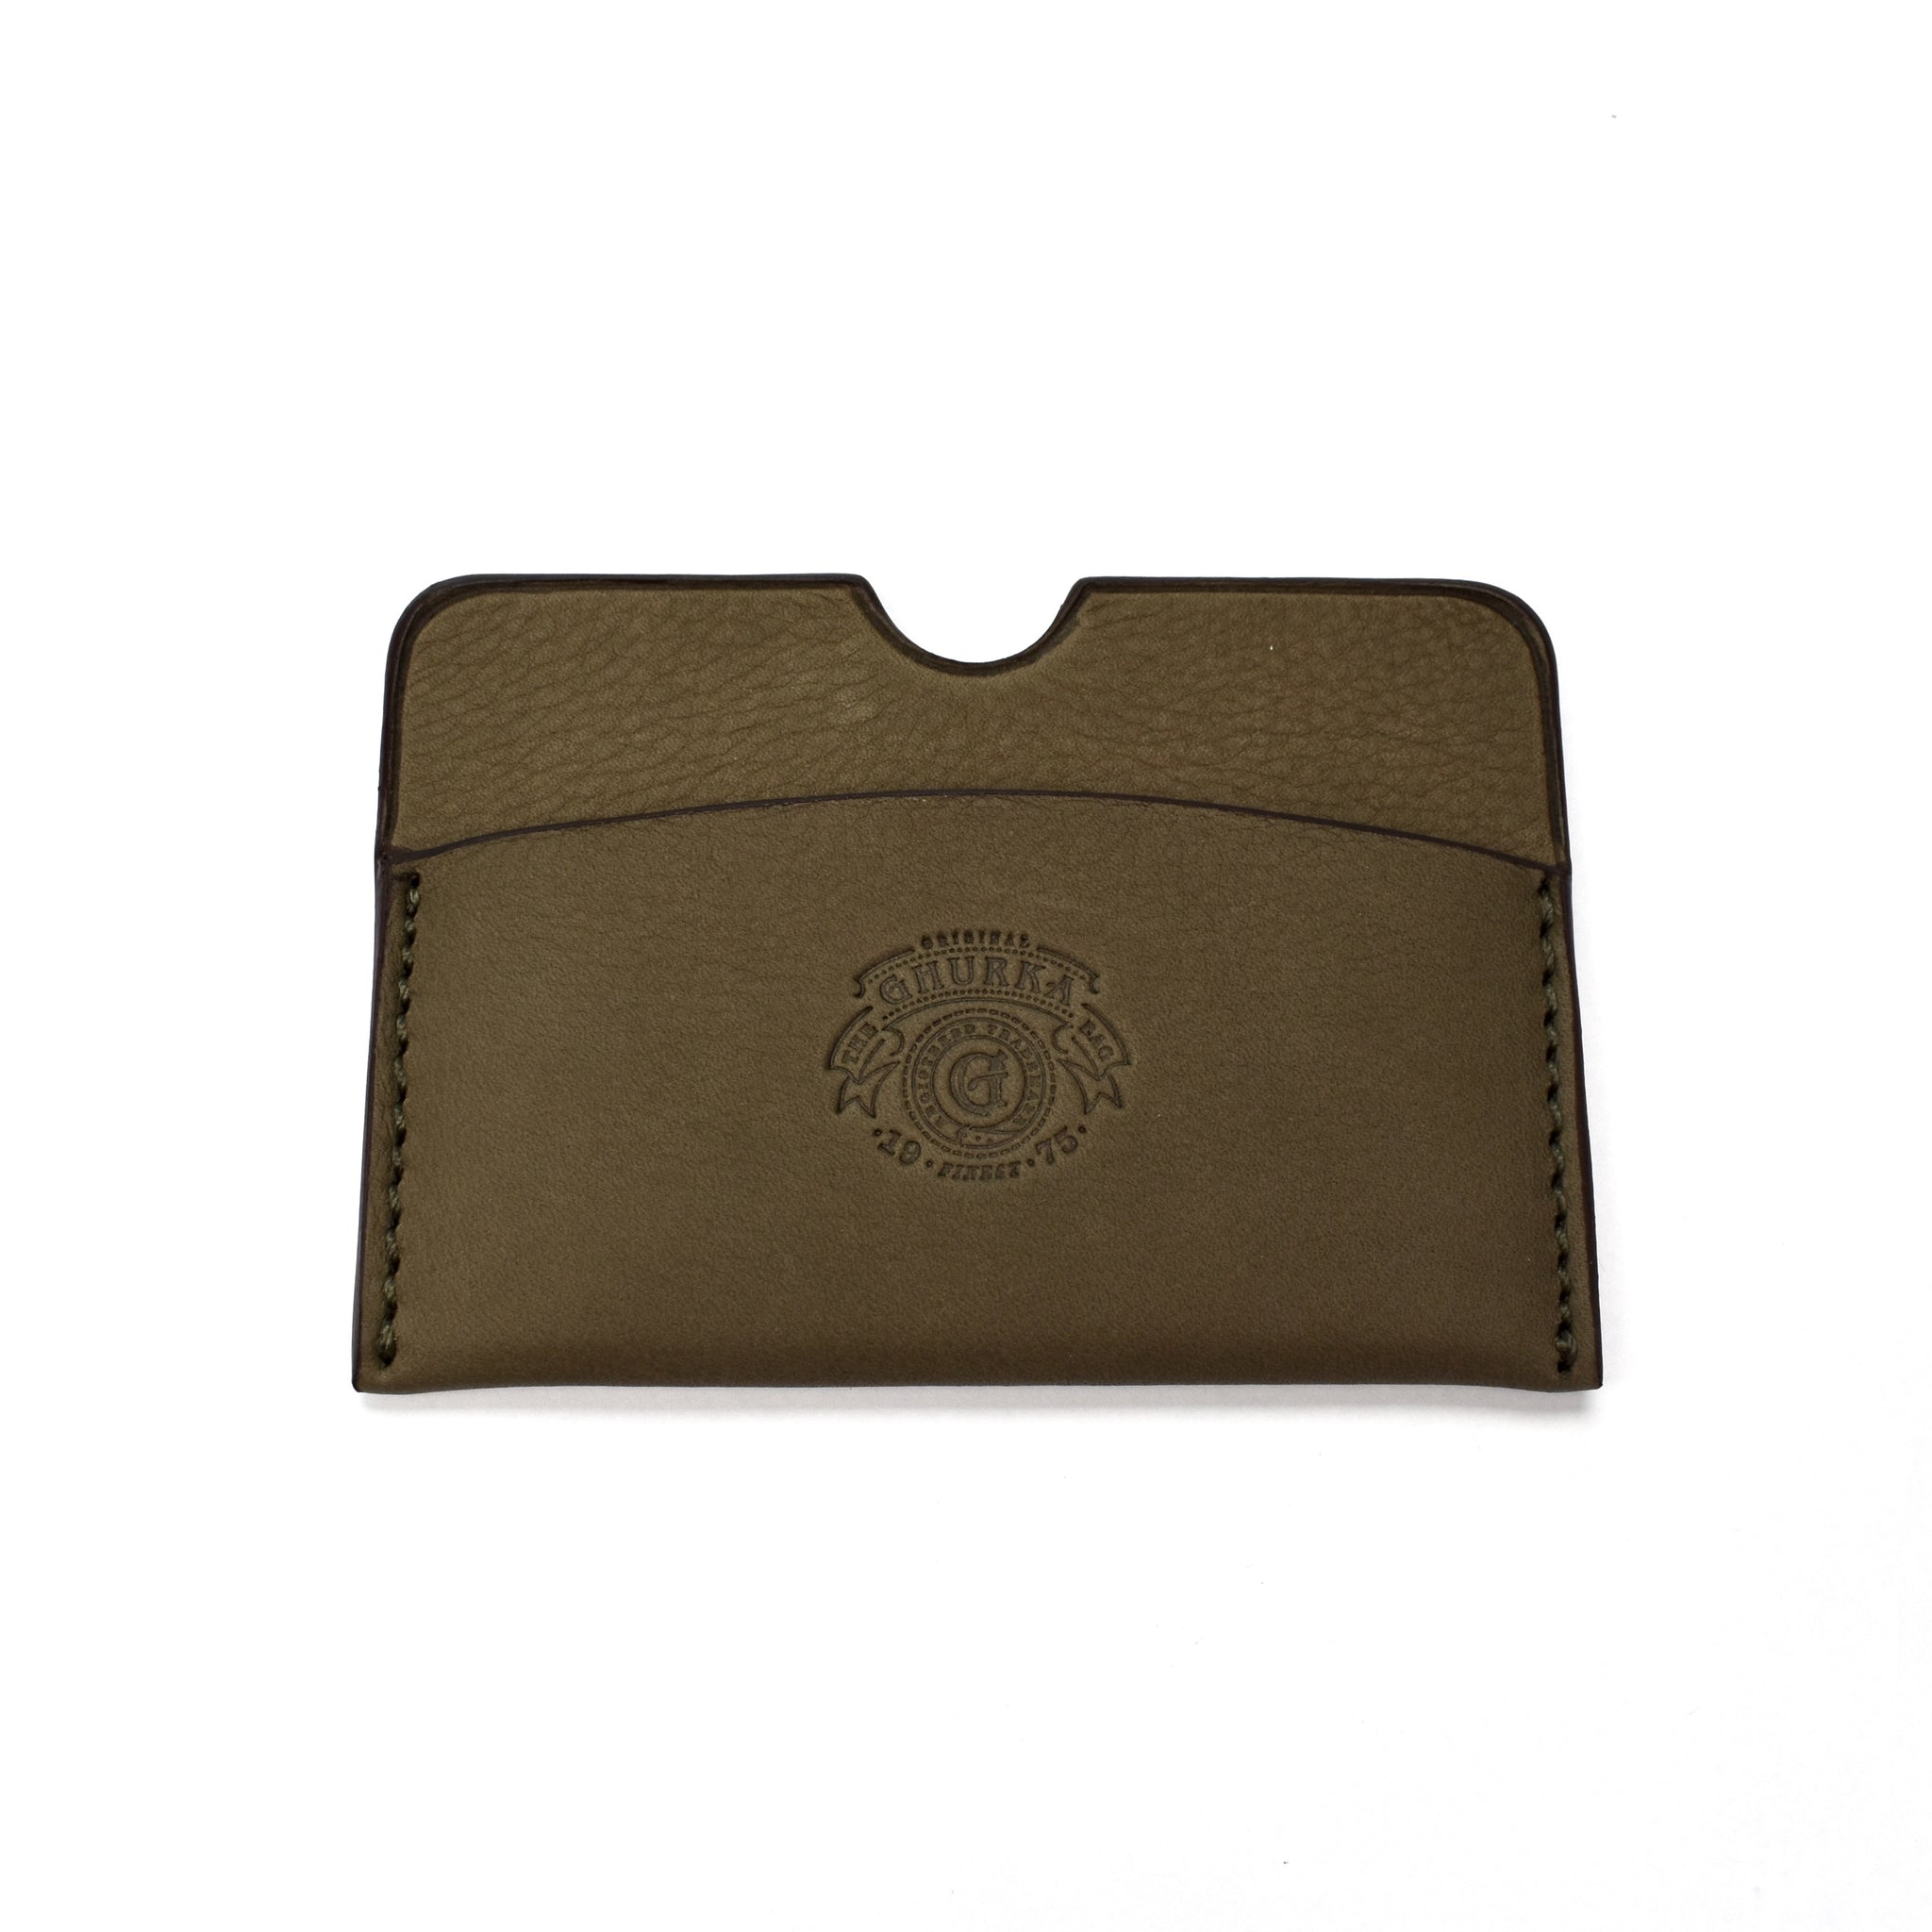 Ghurka - Tumbled Khaki Leather Card Holder